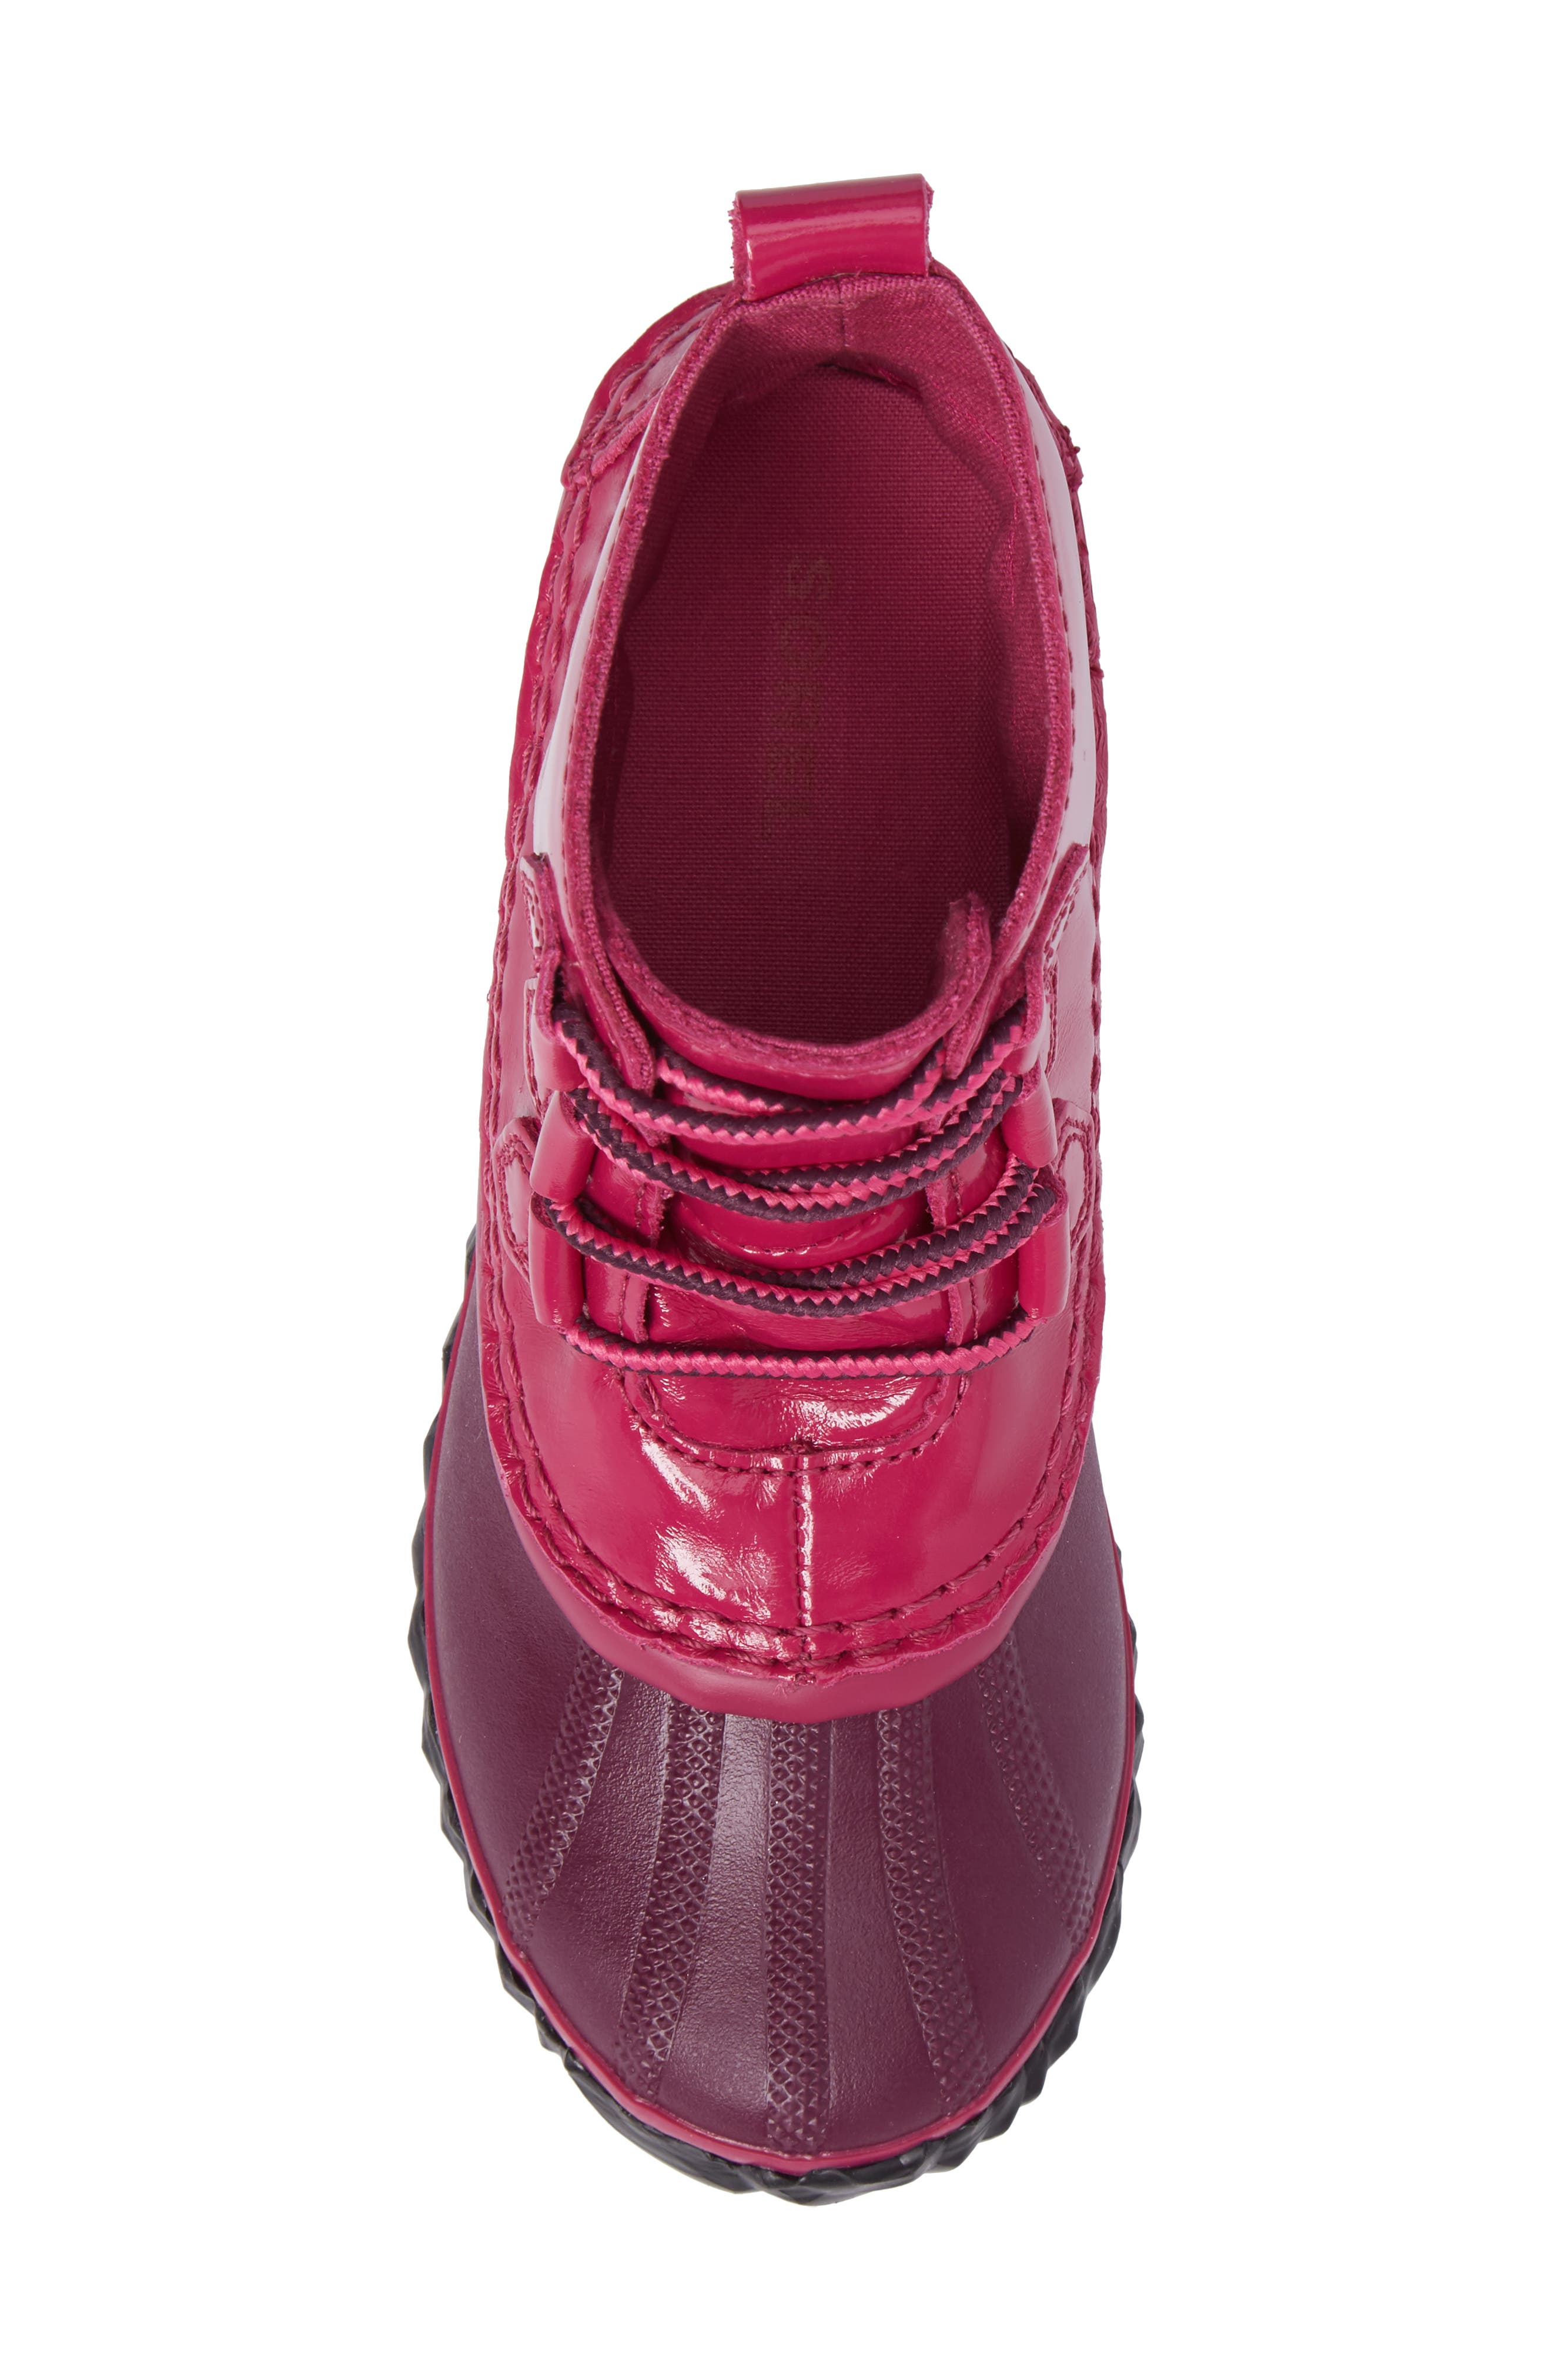 Out 'N About<sup>®</sup> Waterproof Boot,                             Alternate thumbnail 10, color,